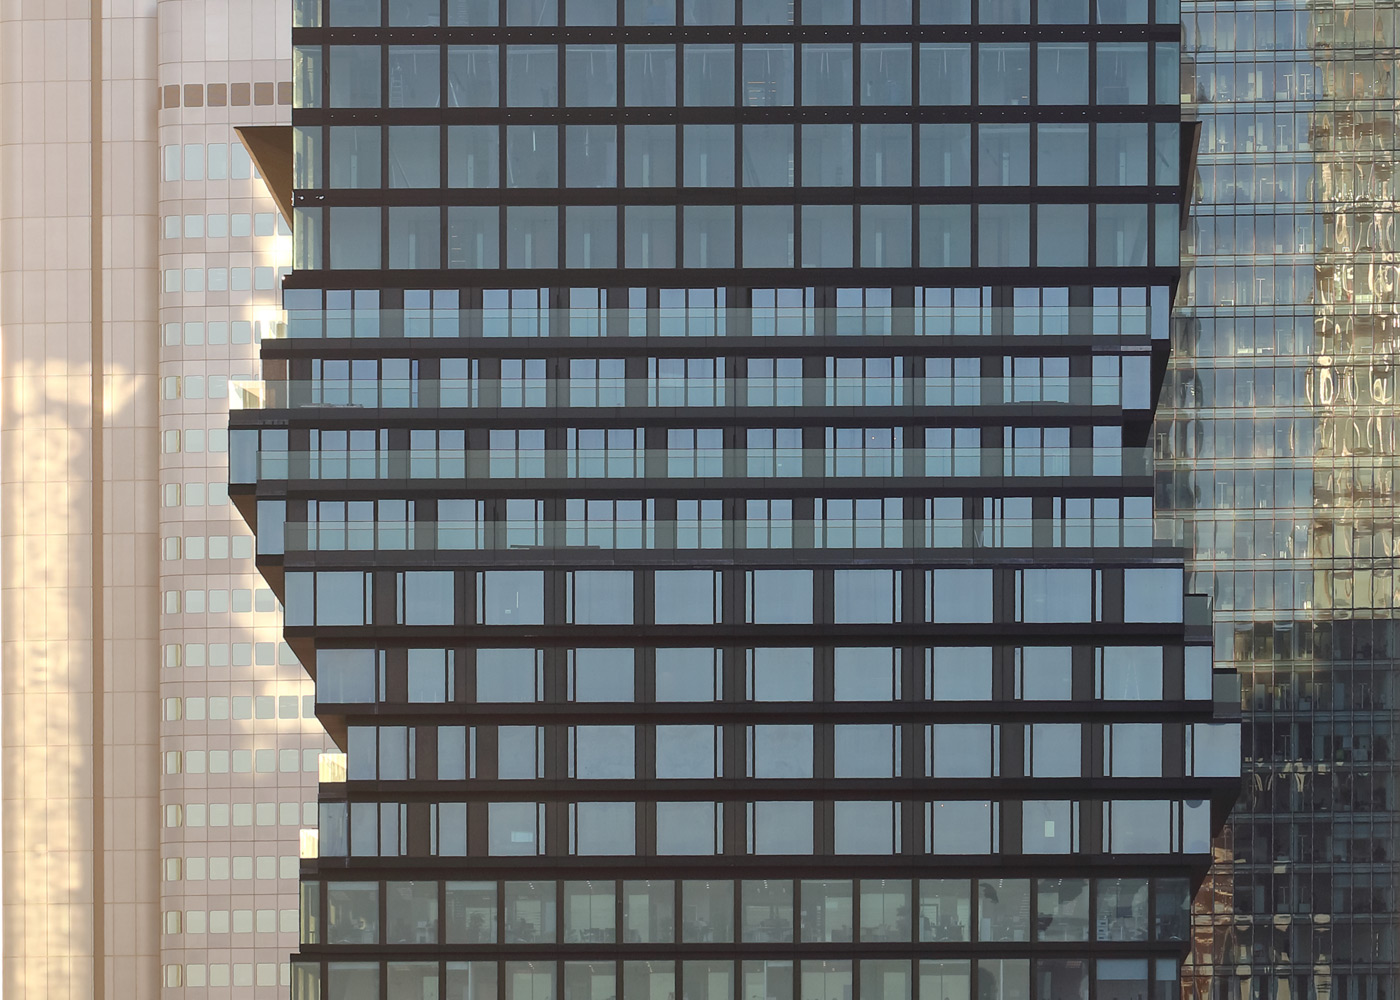 Nominated for the International Highrise Award: Omniturm in Frankfurt am Main